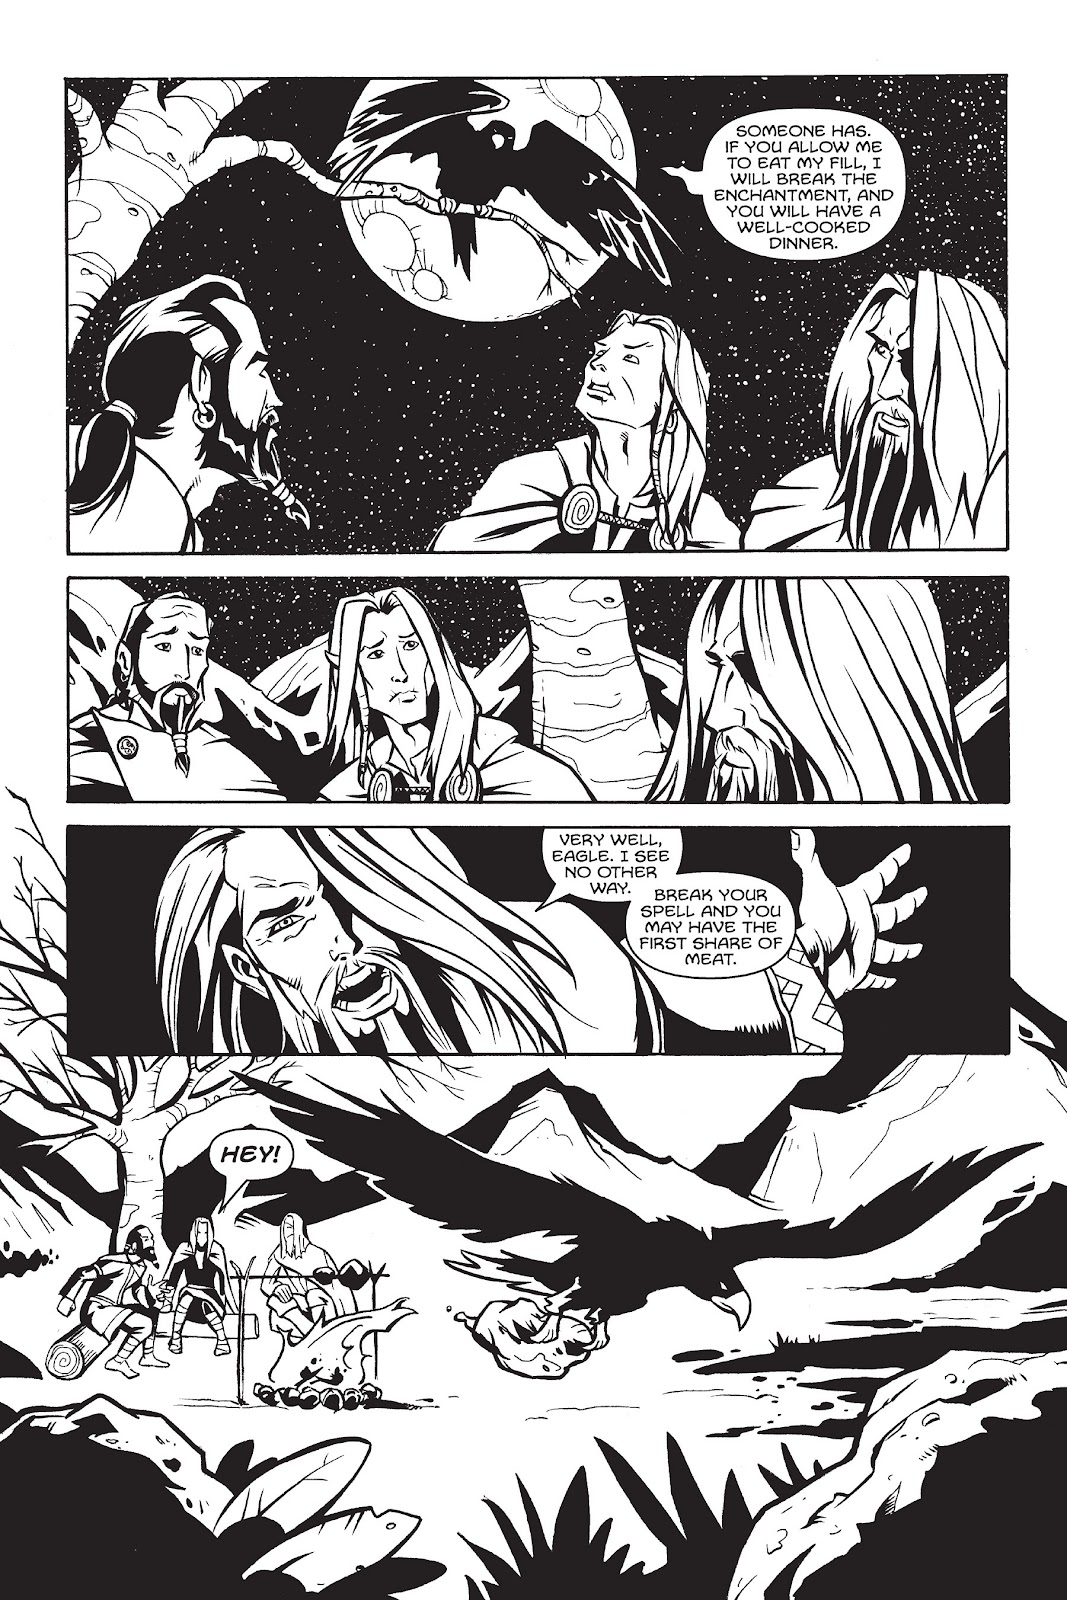 Read online Gods of Asgard comic -  Issue # TPB (Part 1) - 46